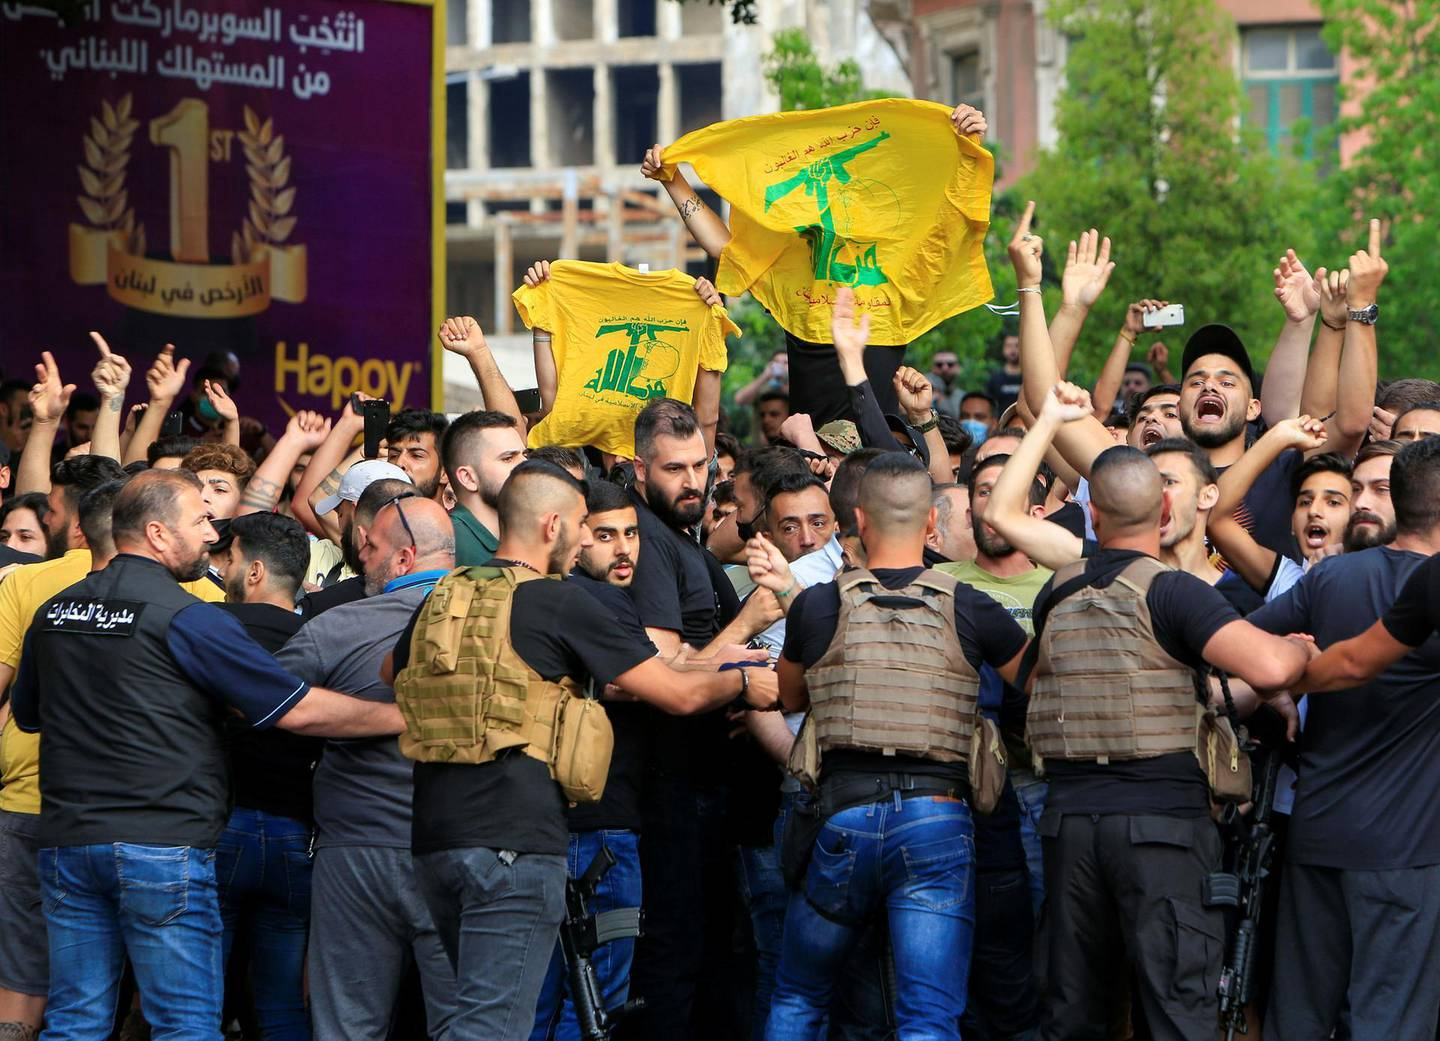 SENSITIVE MATERIAL. THIS IMAGE MAY OFFEND OR DISTURB    Lebanese army try to block supporters of the Lebanese Shi'ite groups Hezbollah and Amal as they gesture and chant slogans against anti-government demonstrators, in Beirut, Lebanon June 6, 2020. REUTERS/Ali Hashisho